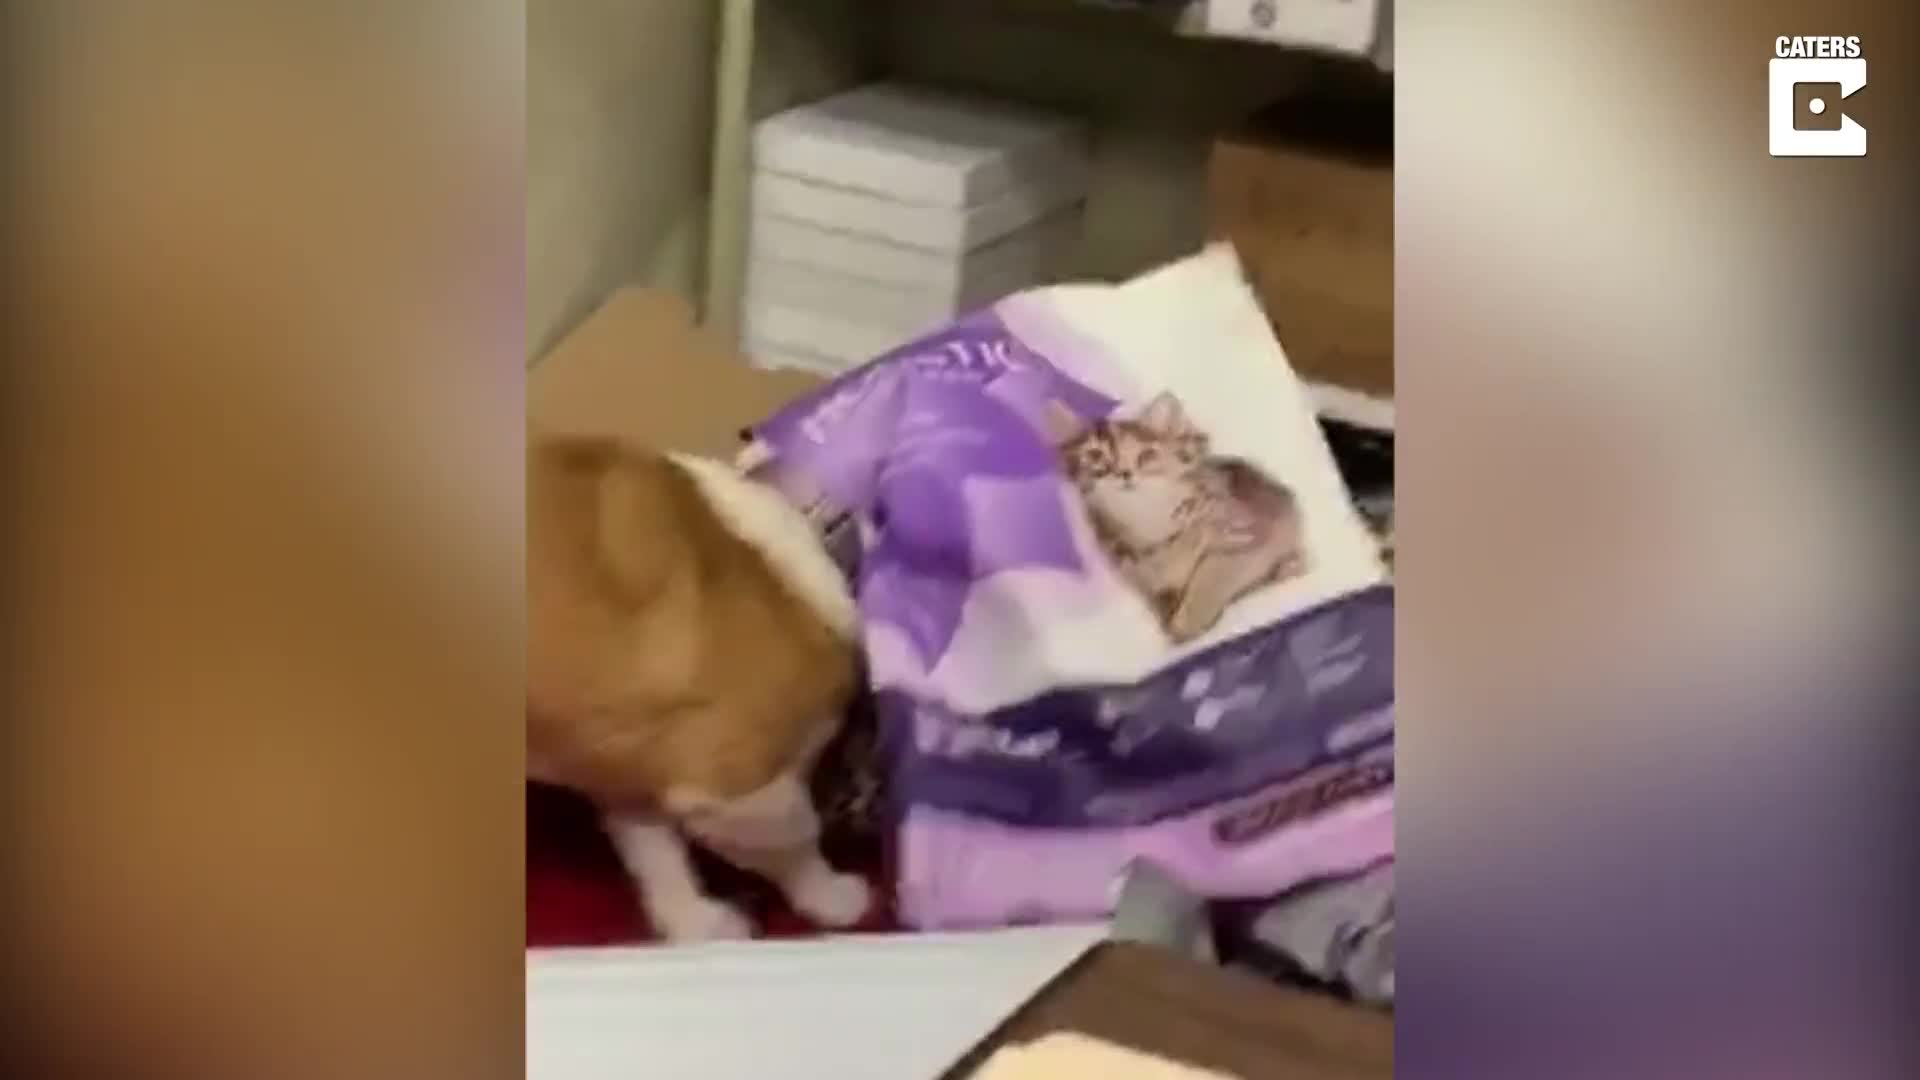 THE DOG IS IN THE BAG! CURIOUS CORGI GETS HEAD STUCK IN A BAG WHILST TRYING TO FIND FOOD